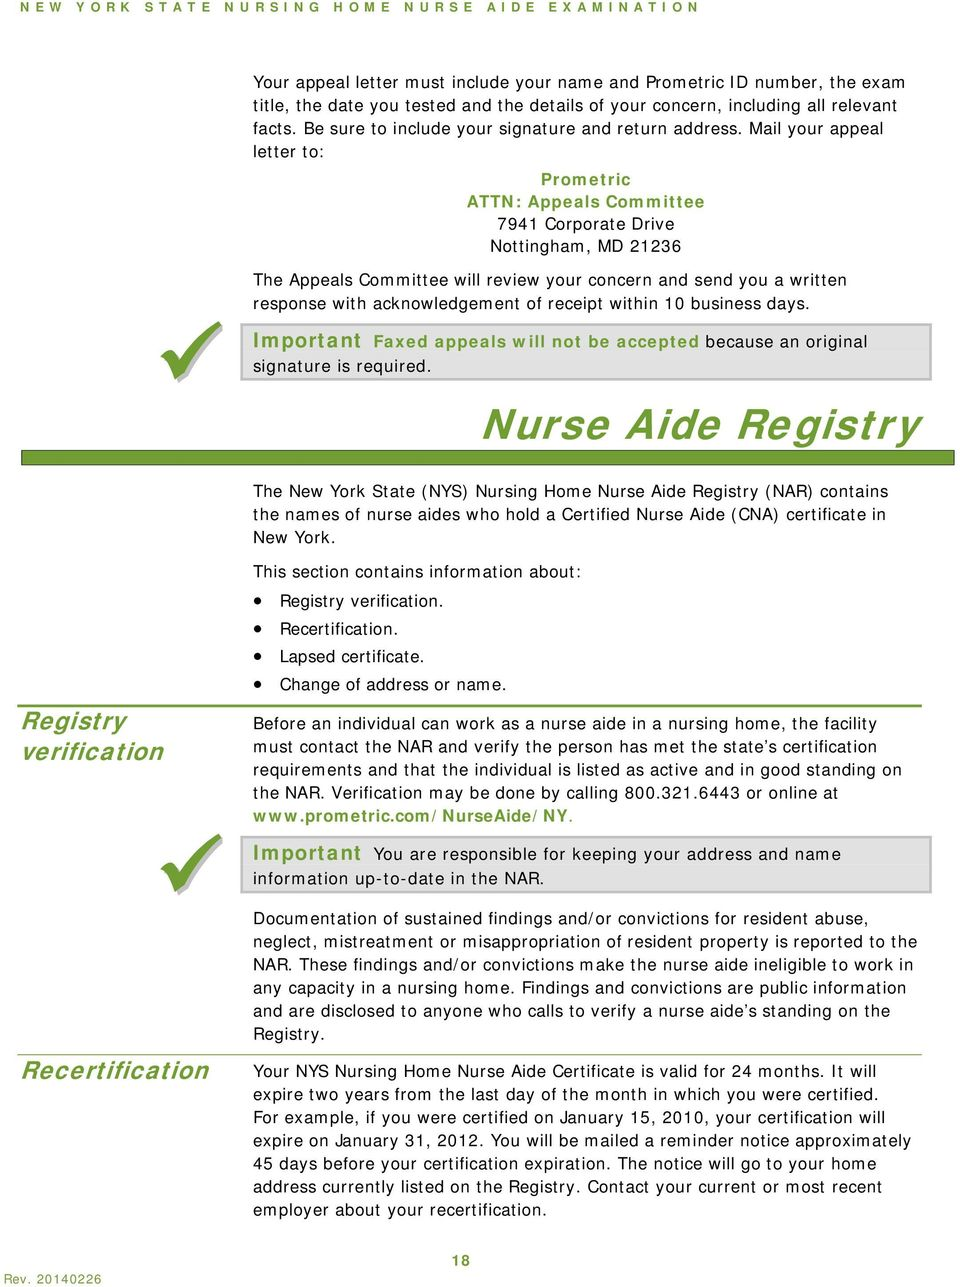 New York Nursing Home Nurse Aide Certification Handbook Department